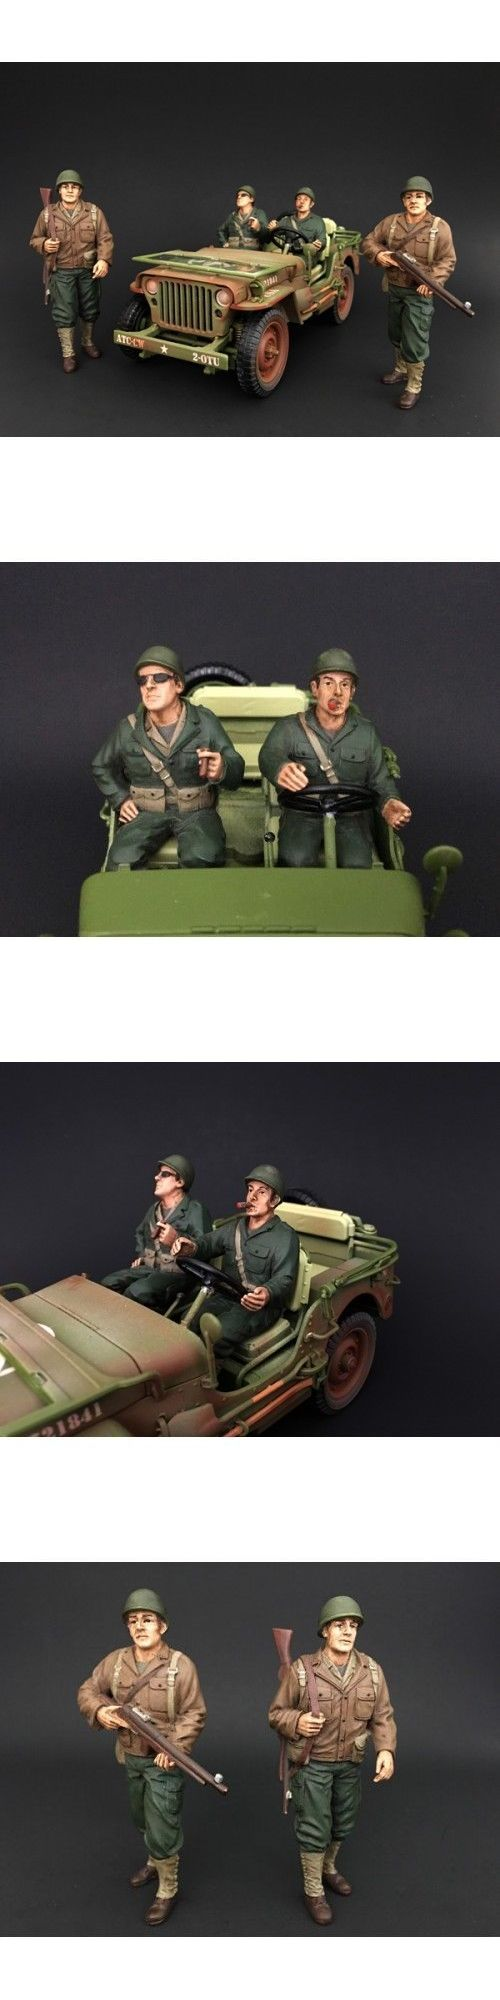 Figures 180279: 1 18 Scale Figure- Wwii Us Army Soldiers - Set Of All 4 - American Diorama -> BUY IT NOW ONLY: $45 on eBay!